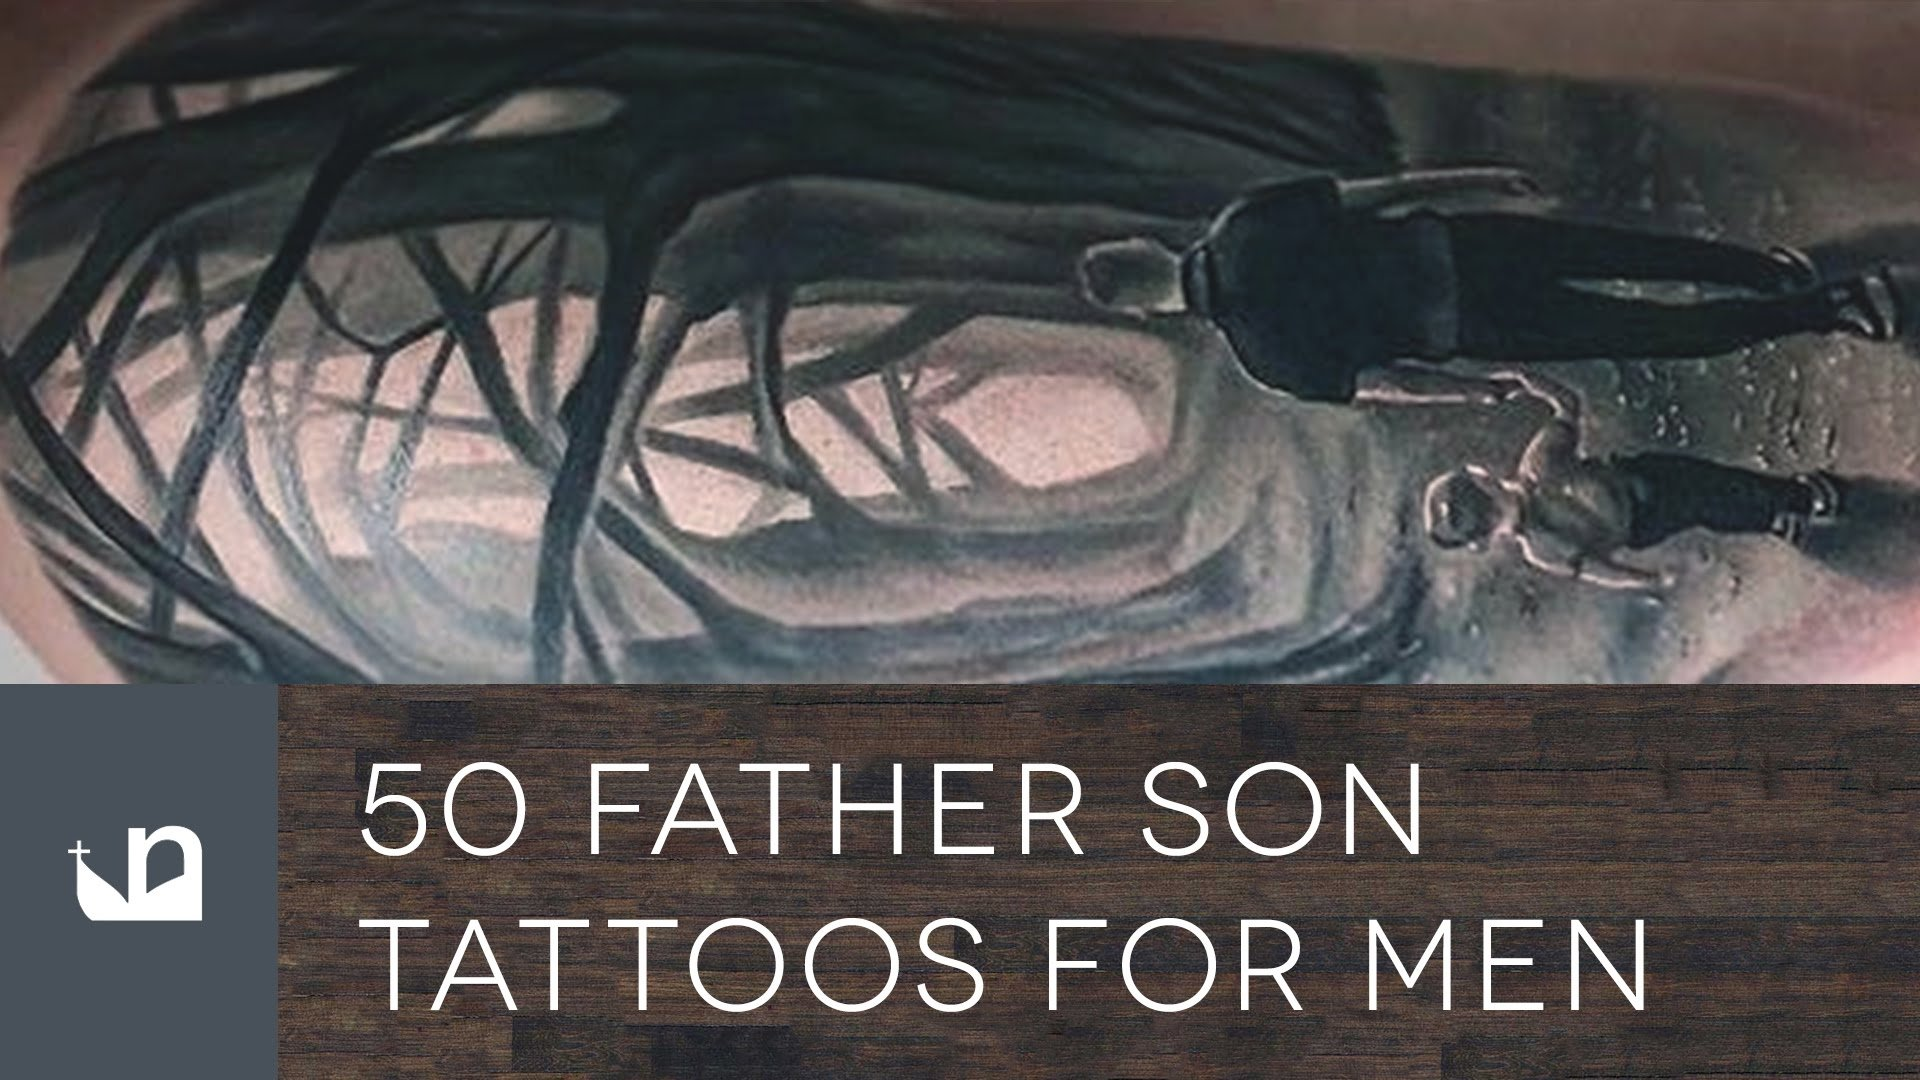 10 Ideal Father And Son Tattoo Ideas 50 father son tattoos for men youtube 2